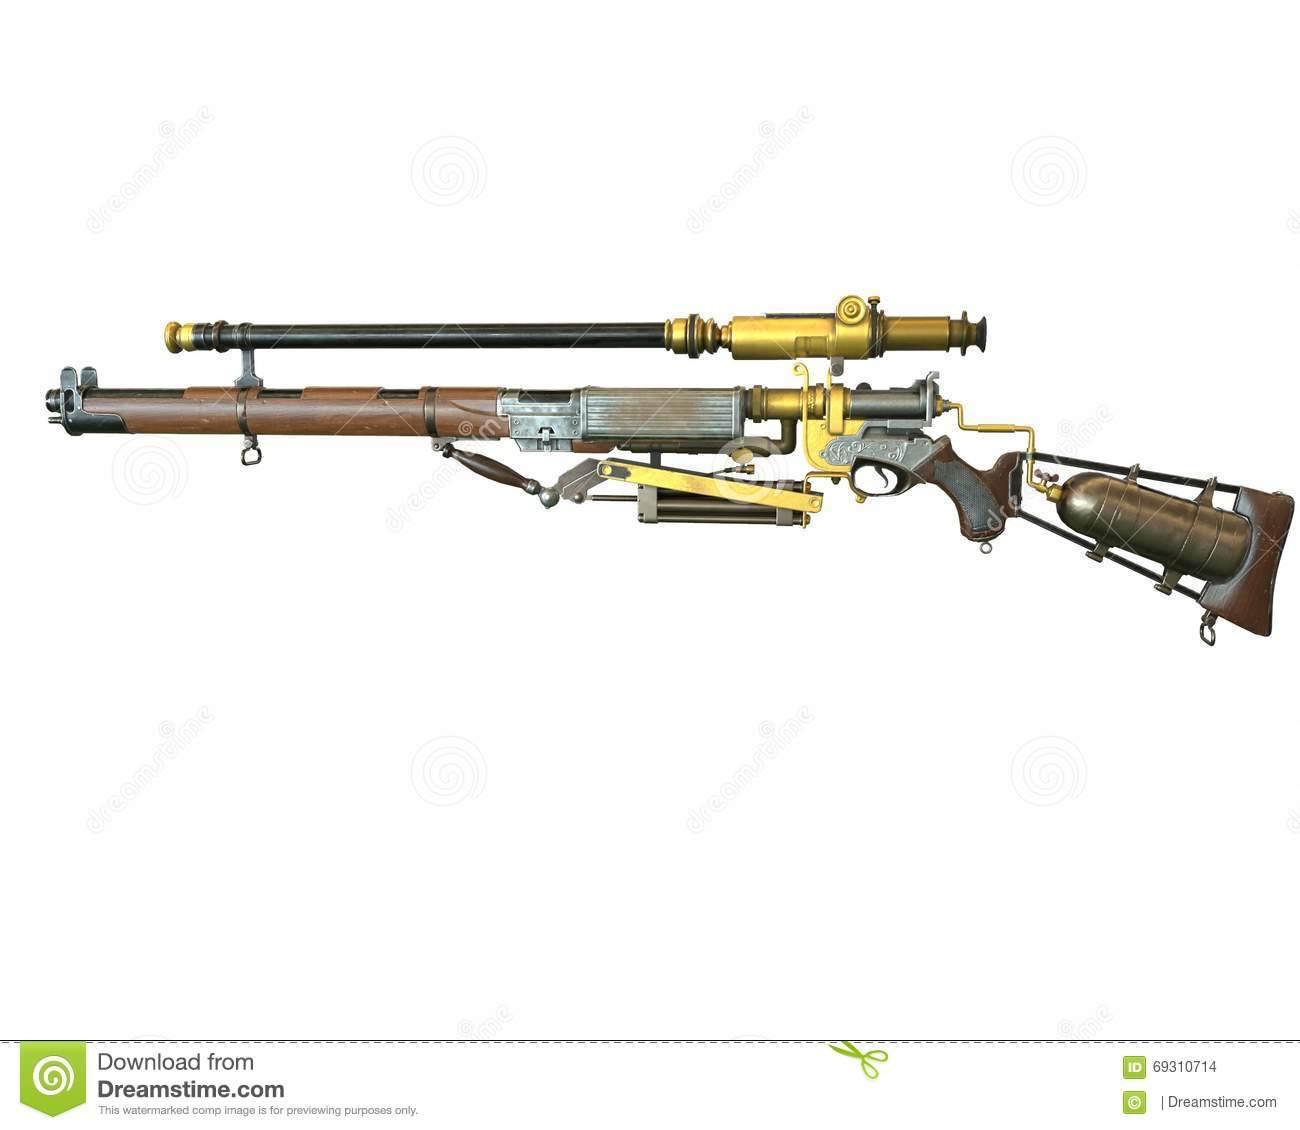 Rifle Concept charge Rifle  Fan Concepts  Warframe Forums